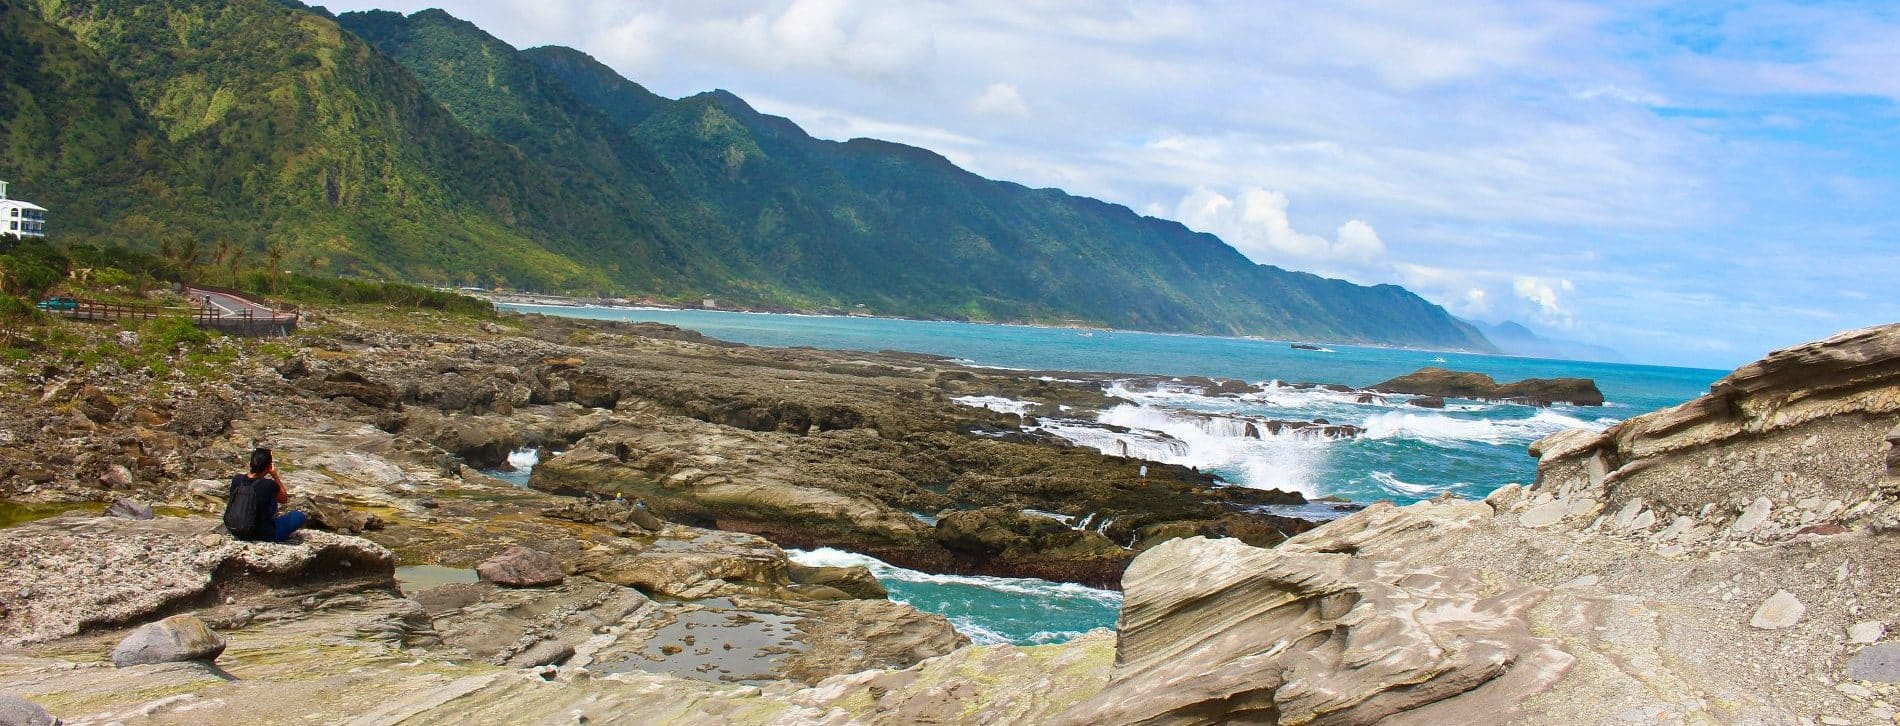 Hualien To Taitung Coastal Cruiser